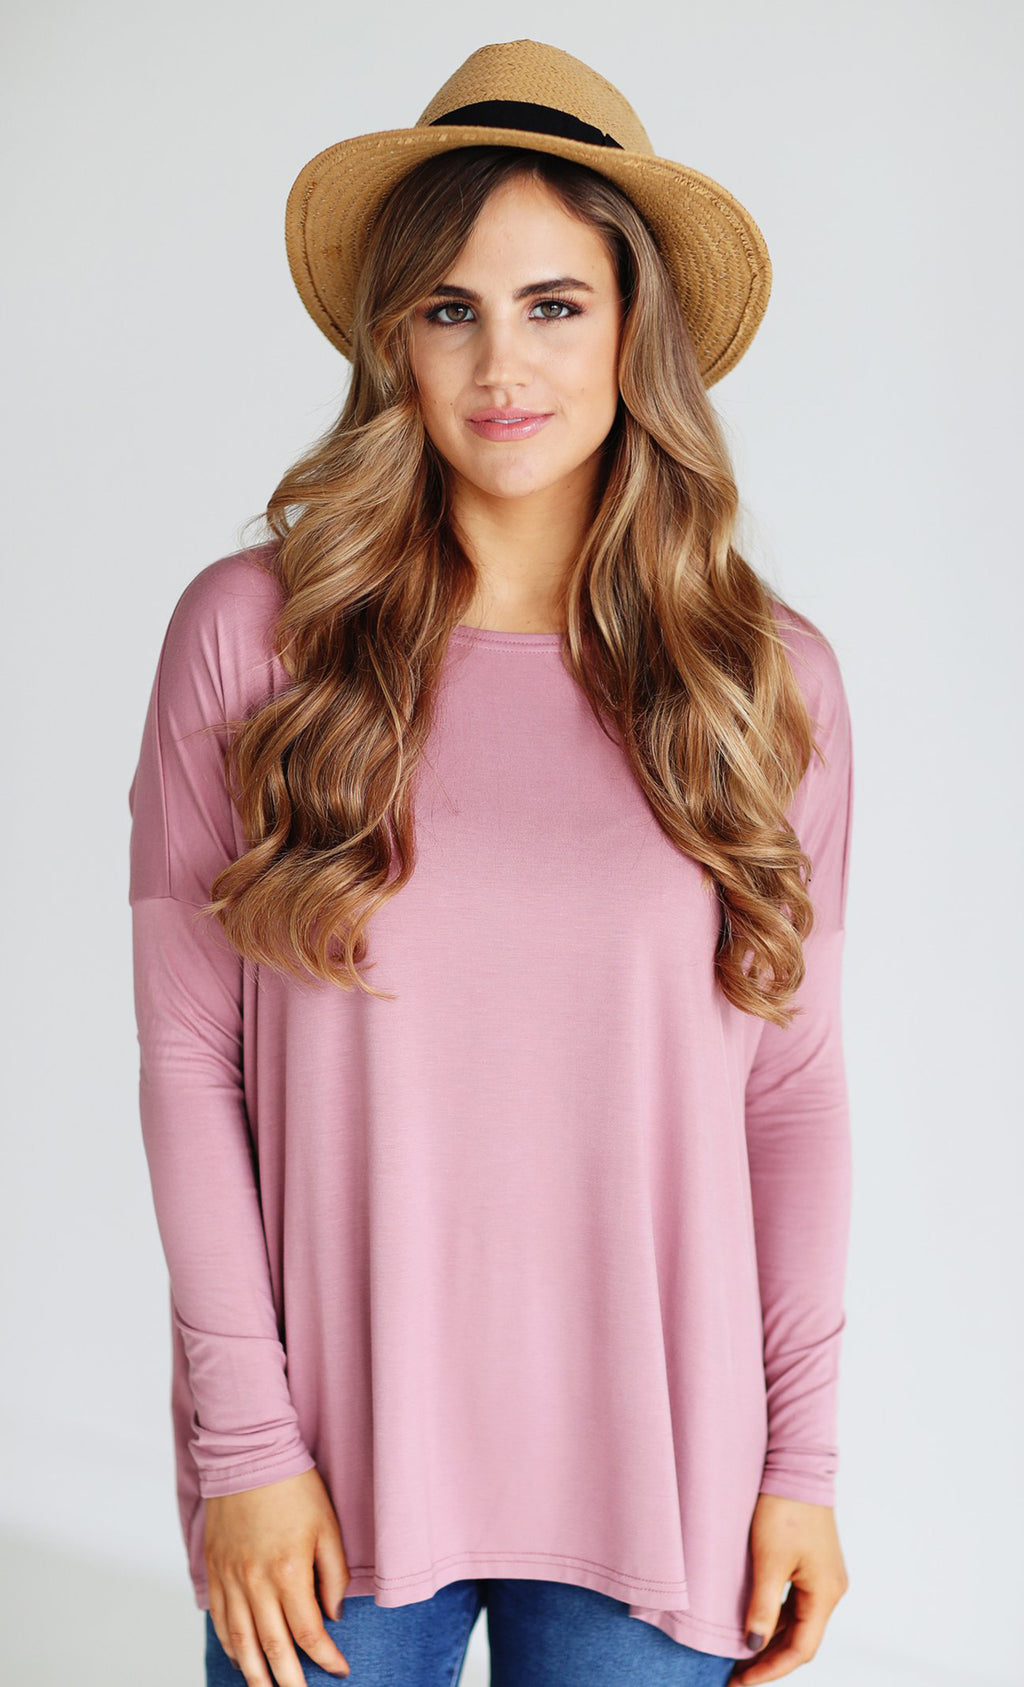 Basic Piko 1988 Rose Pink Bamboo Piko Comfy Boat Neck Long Sleeve Slouchy Knit Tee Shirt Top